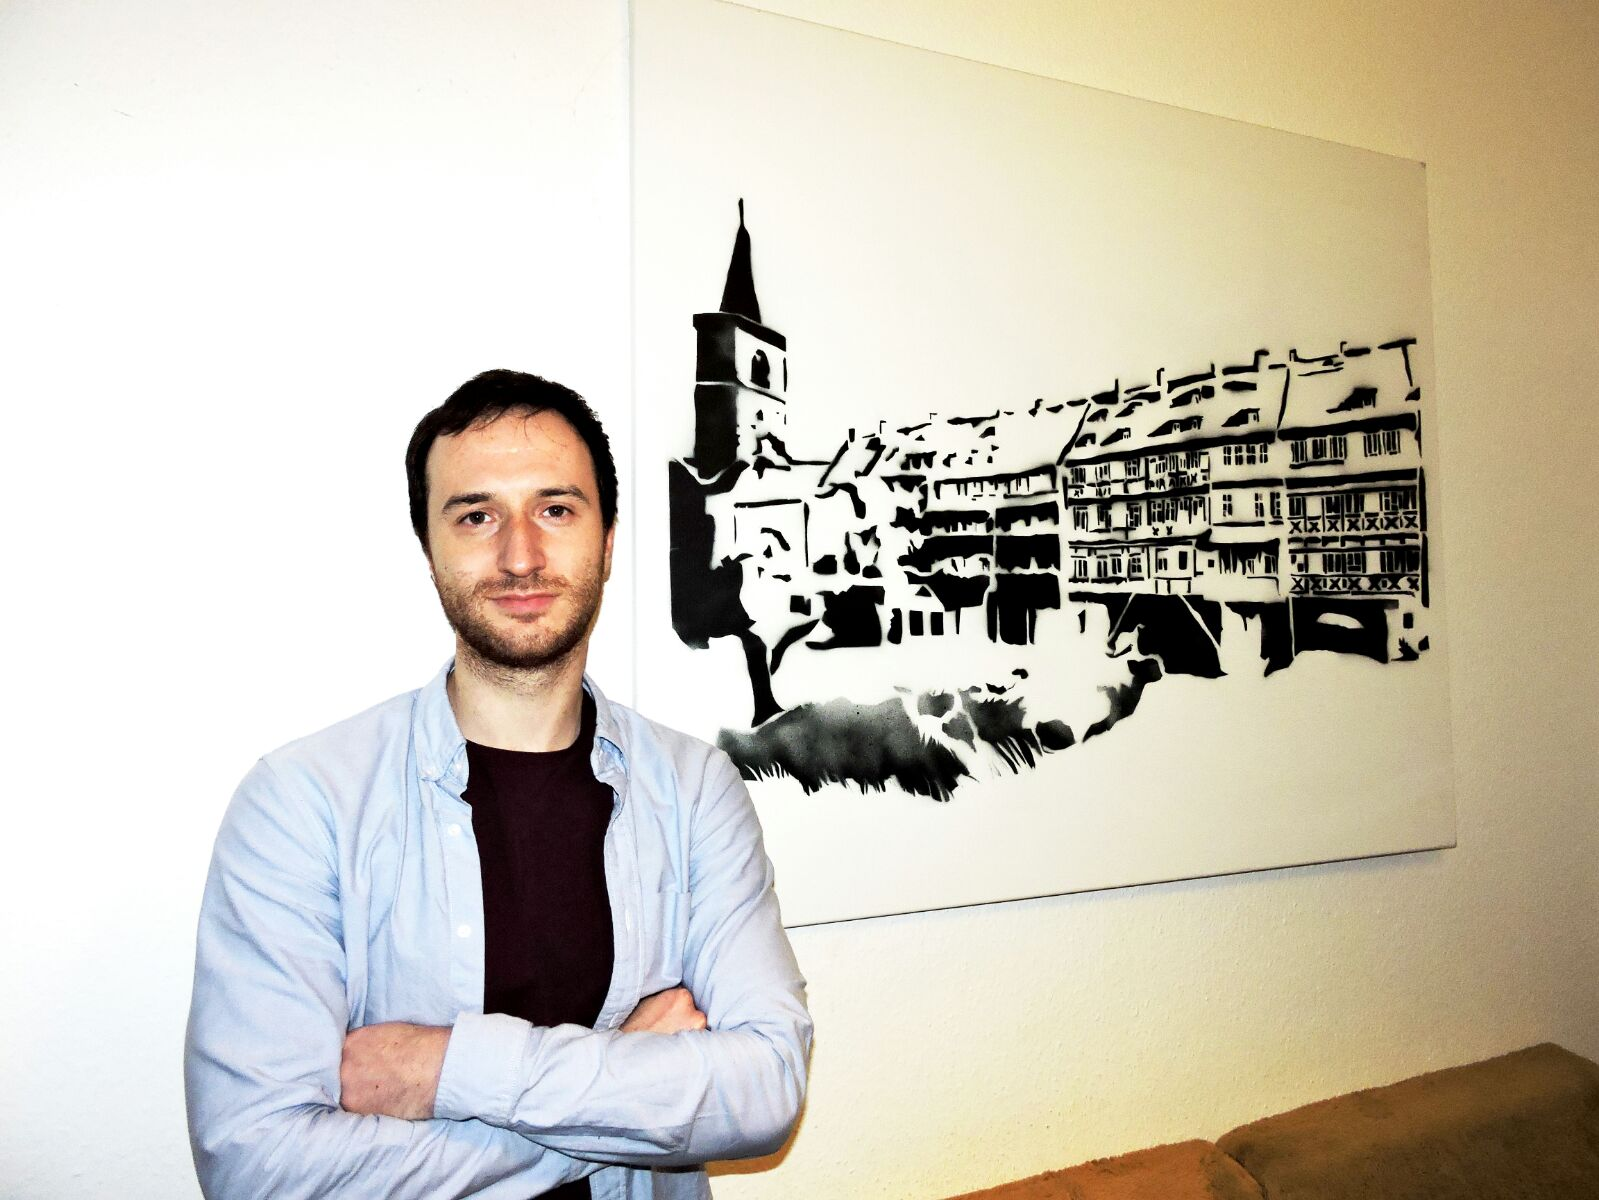 Erfurter im Interview: Andreas von Local Times